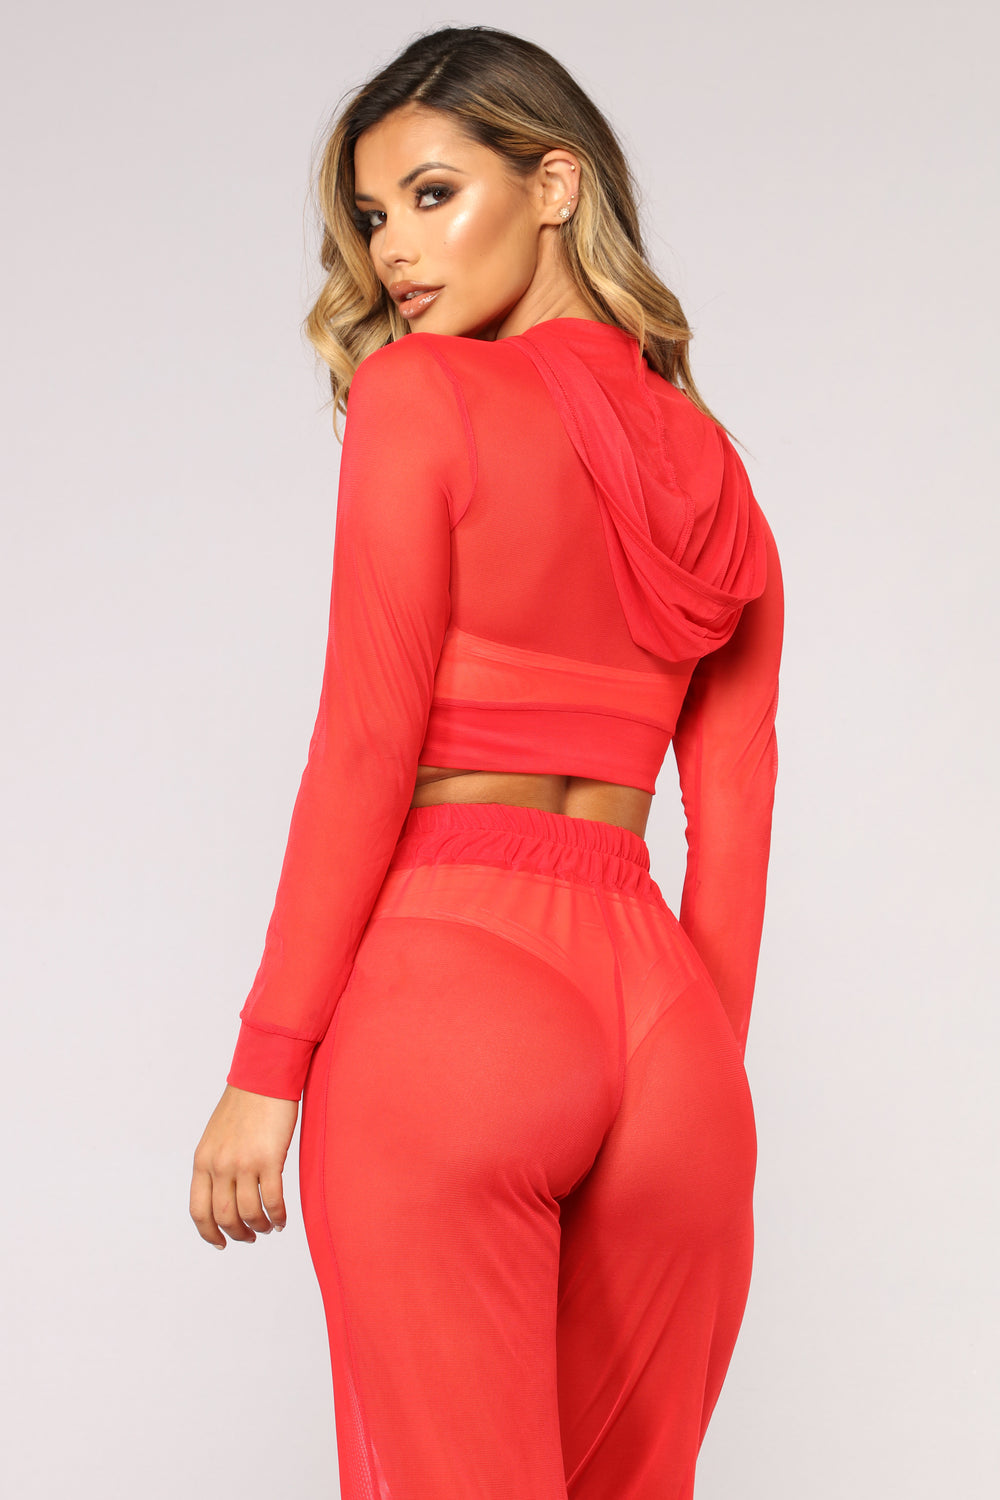 Stayin' Shady Coverup Set - Red